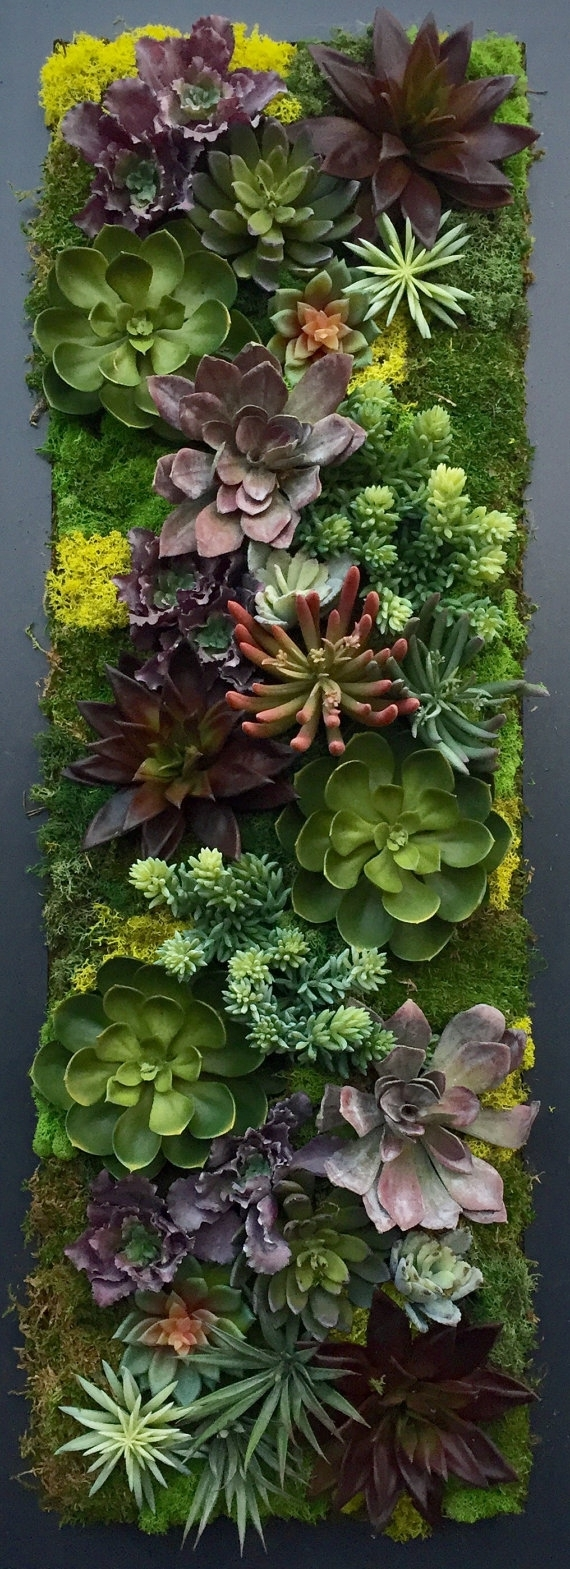 Custom Made Succulent Wall Art | ????????? | Pinterest | Succulent With Current Succulent Wall Art (View 16 of 20)